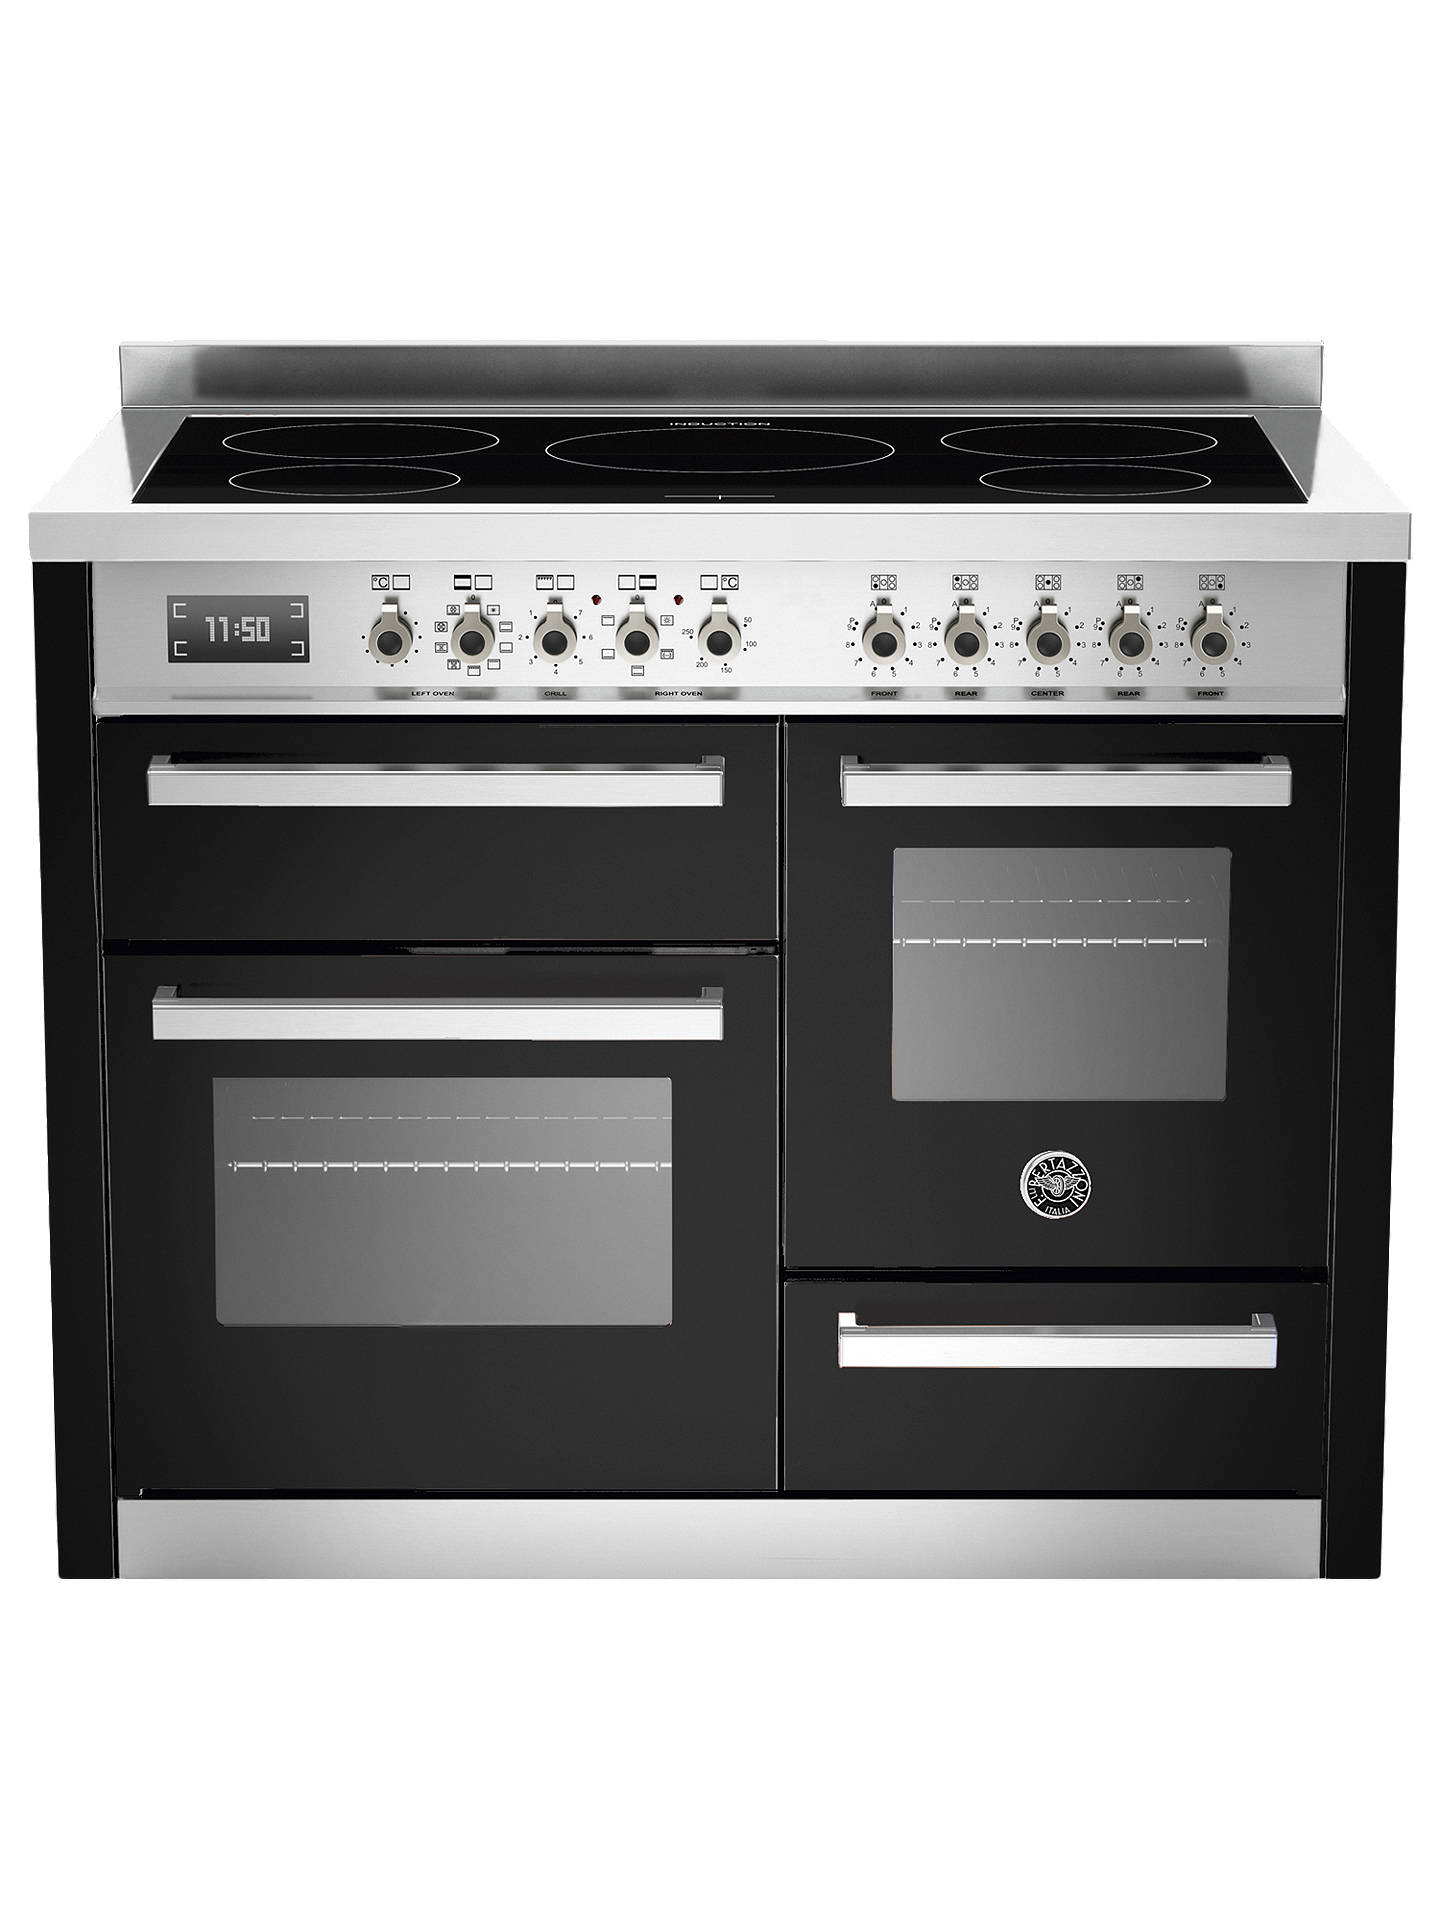 BuyBertazzoni Professional Series 110cm Induction Range Cooker, Black Online at johnlewis.com